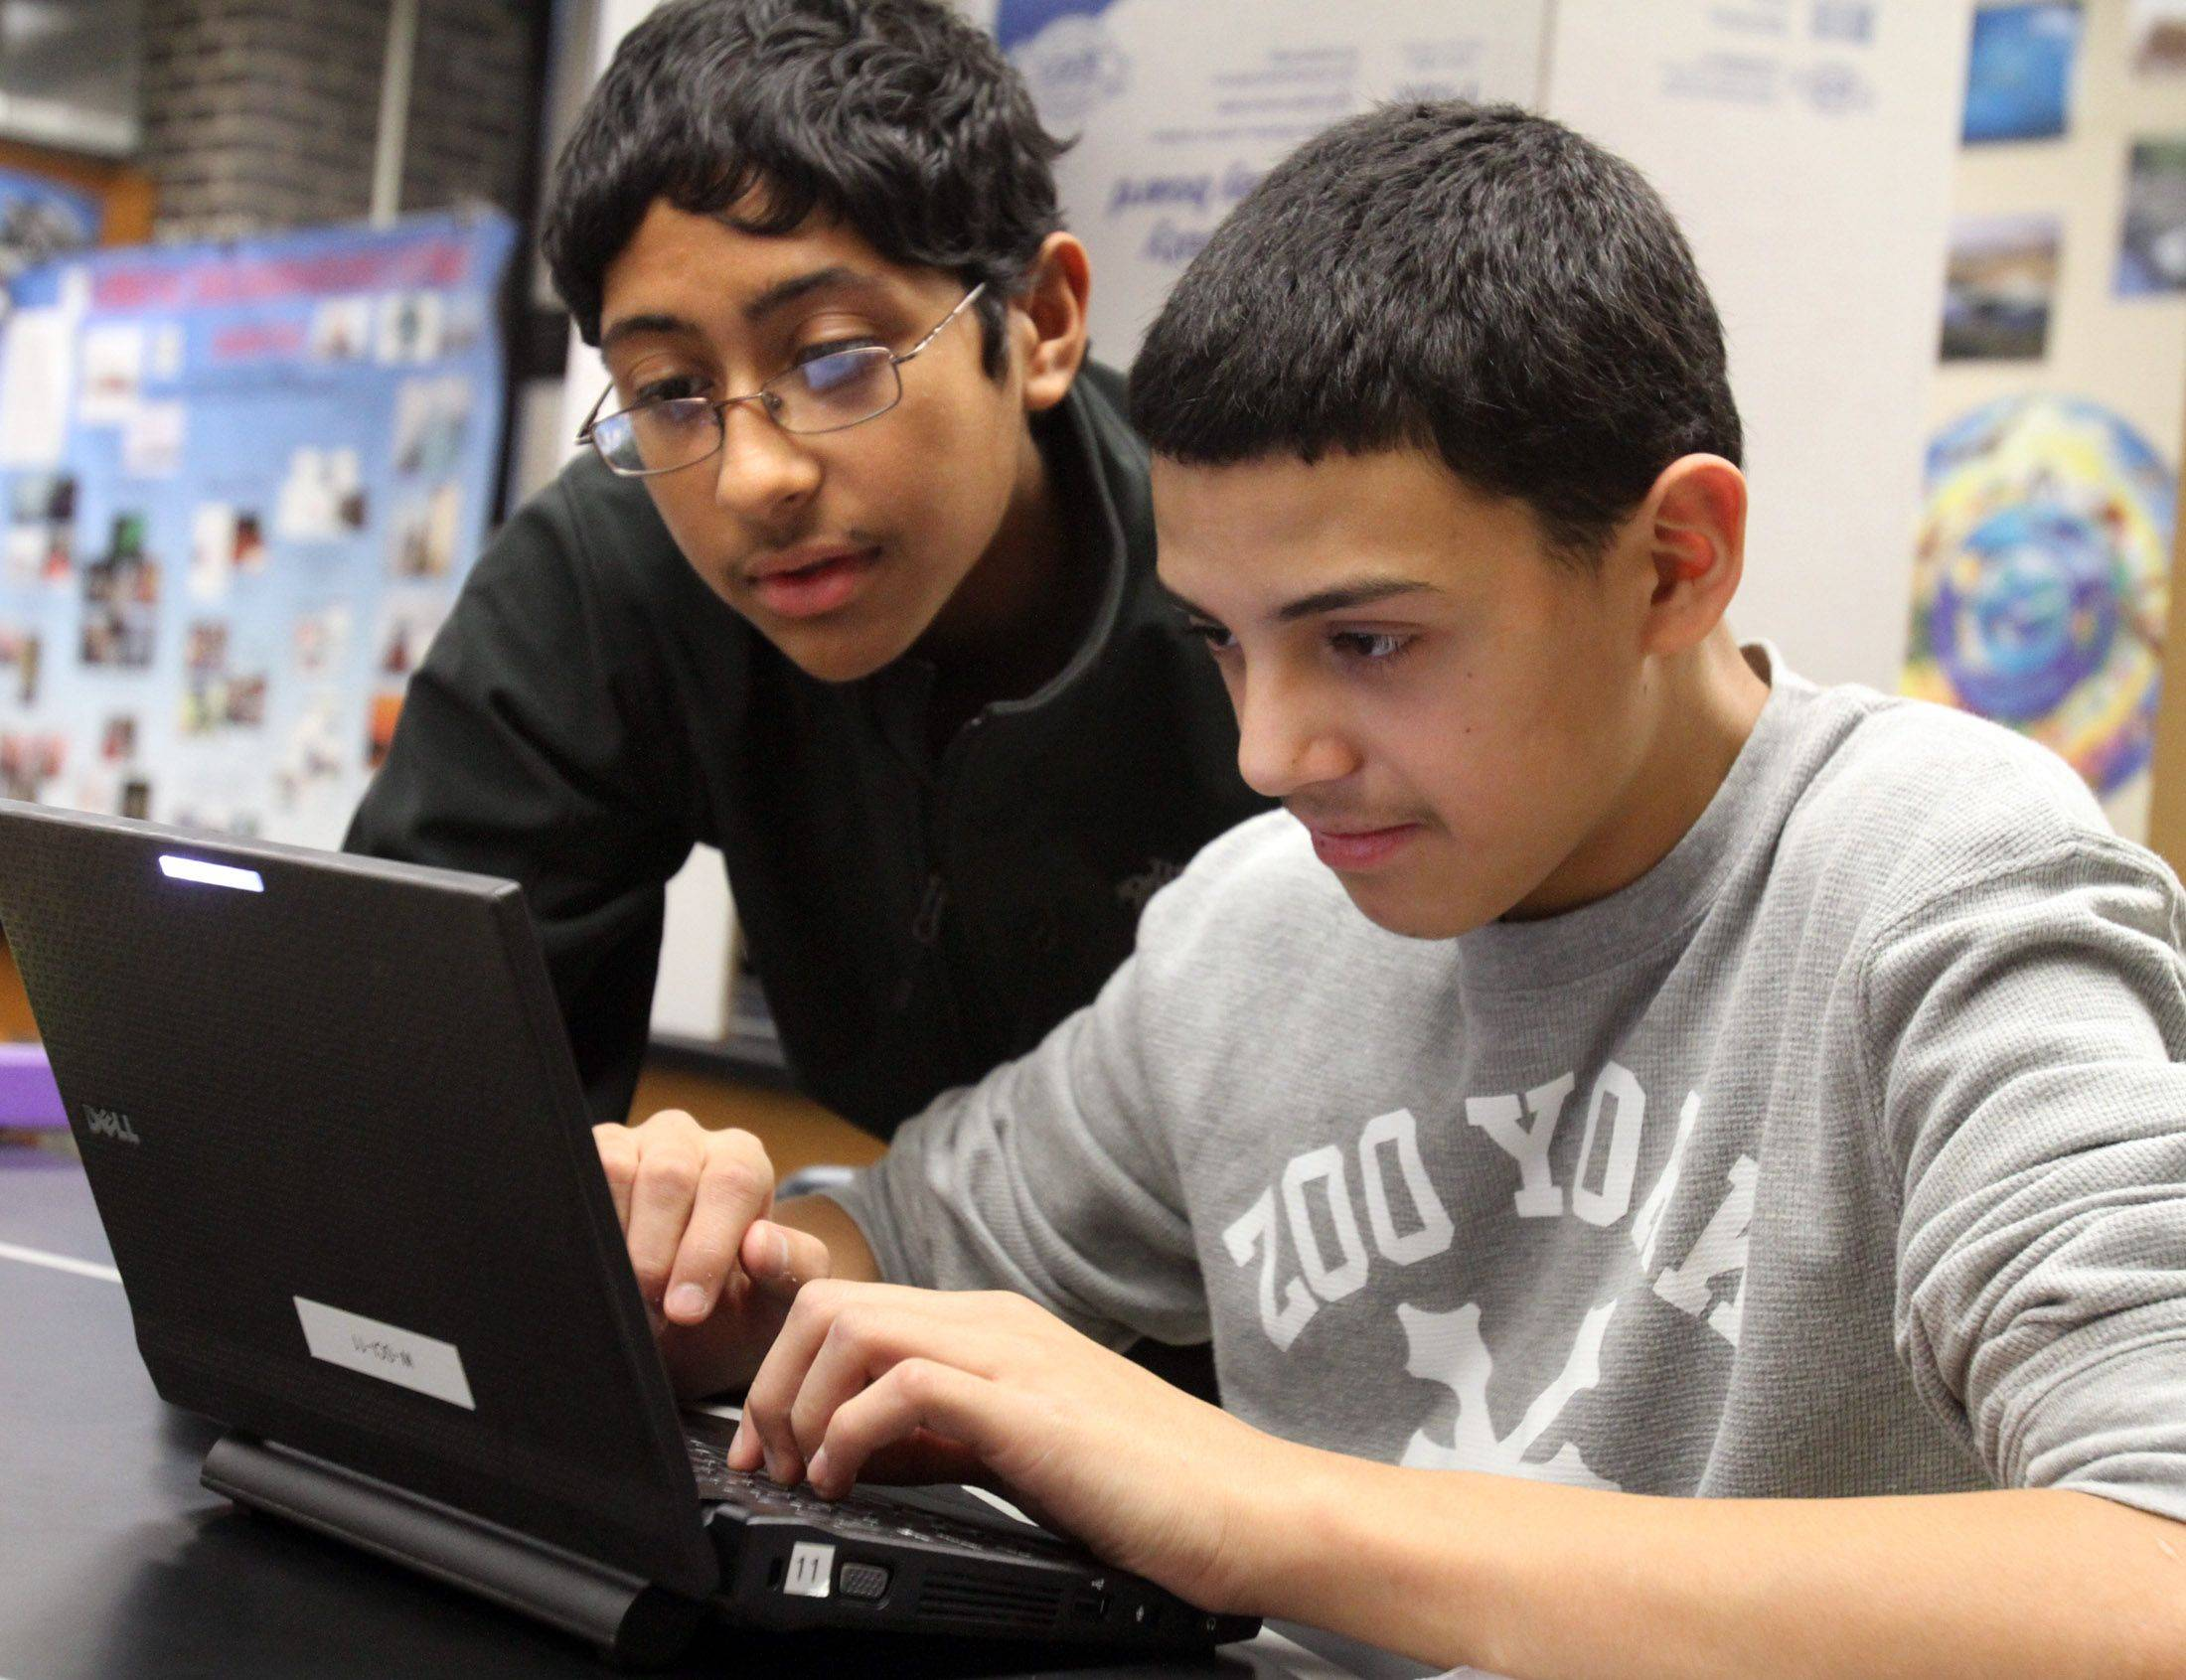 Stephen Mayorga, a junior at West Leyden High School, left, mentors freshman Alexis Diaz during a required extra period for freshmen after school.